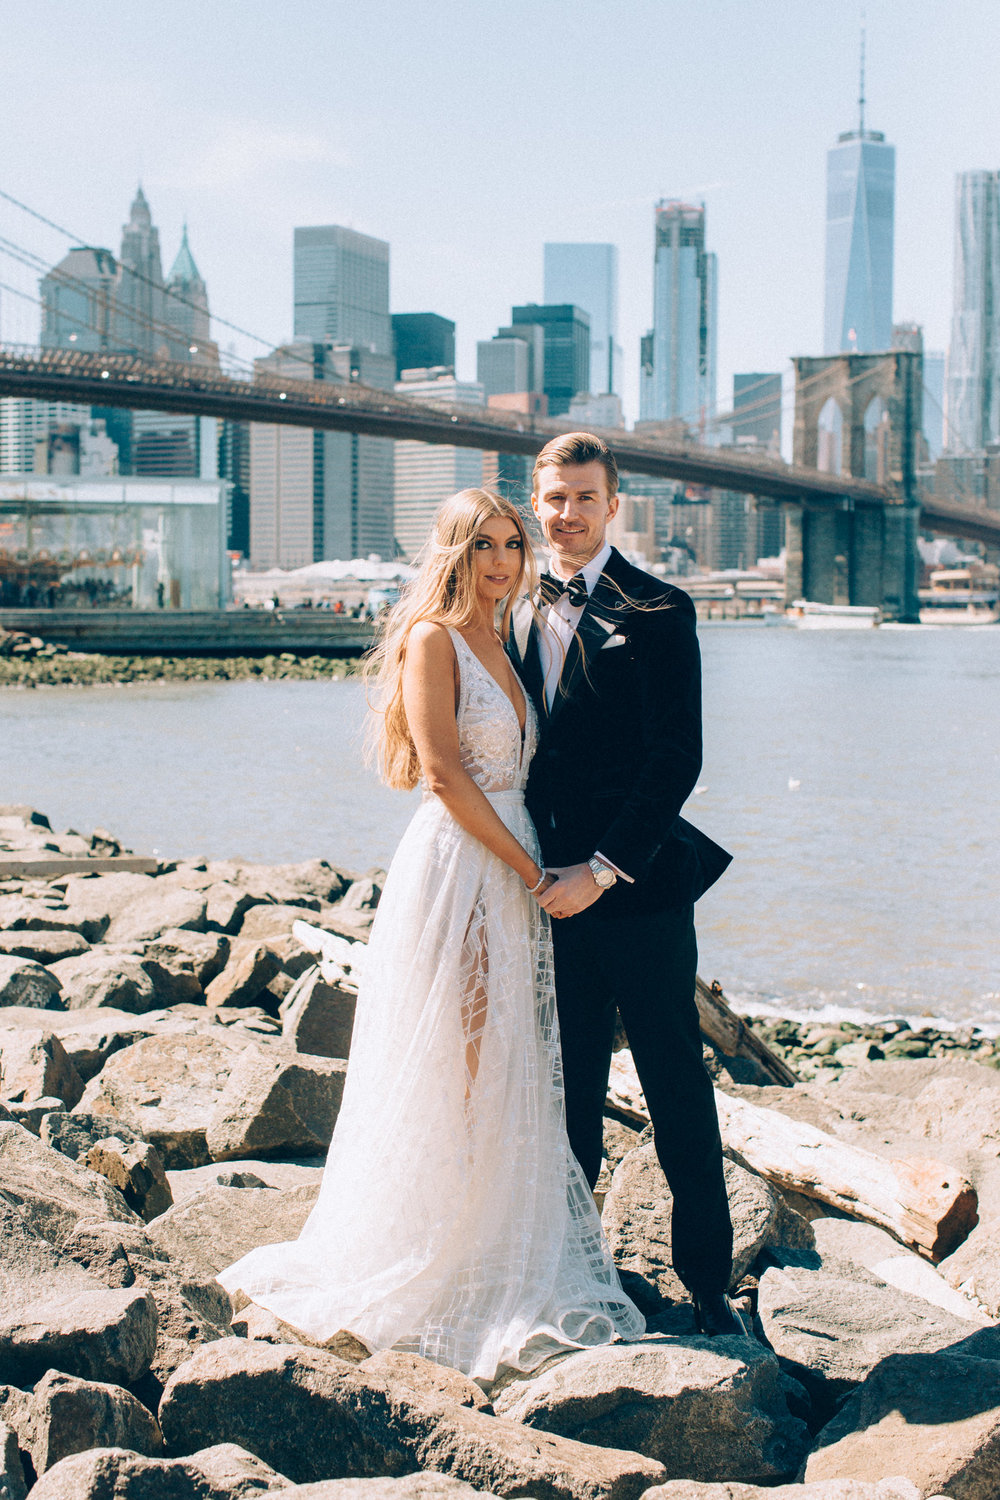 _B2C9815NYC wedding photography manhattan penhouse lotte palace brooklyn wedding photogrpaher boris zaretsky.jpg